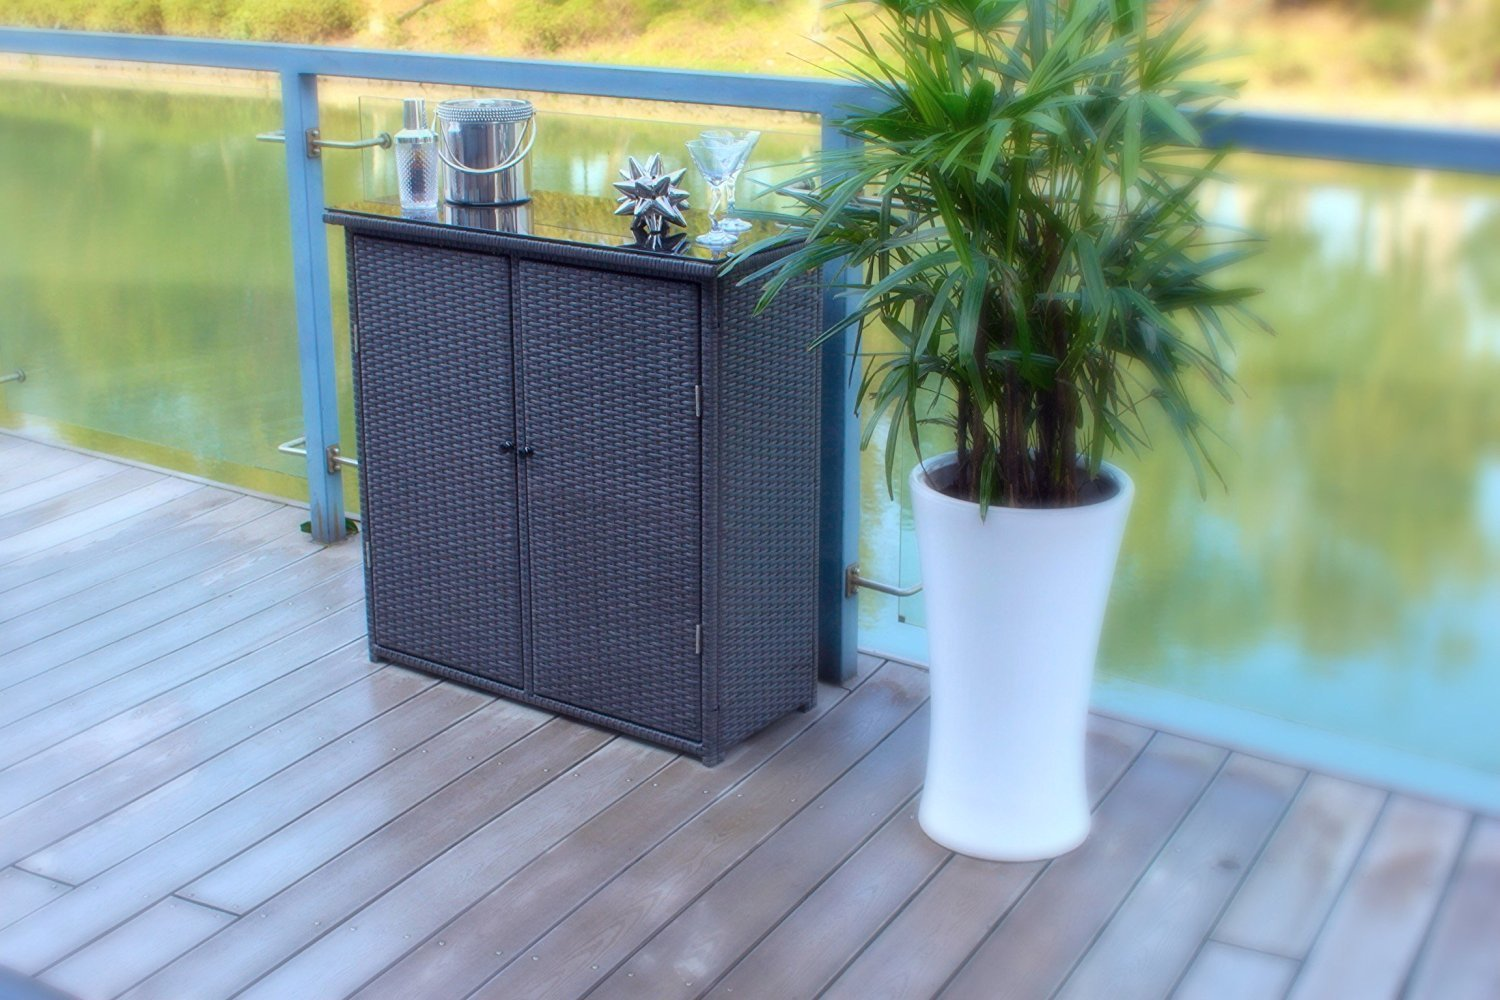 Pebble Lane Living Outdoor Hand Woven UV Resin Wicker and Powder-Coated Aluminum Serving Bar/Buffet Table Unit with Tempered Glass Top - Black